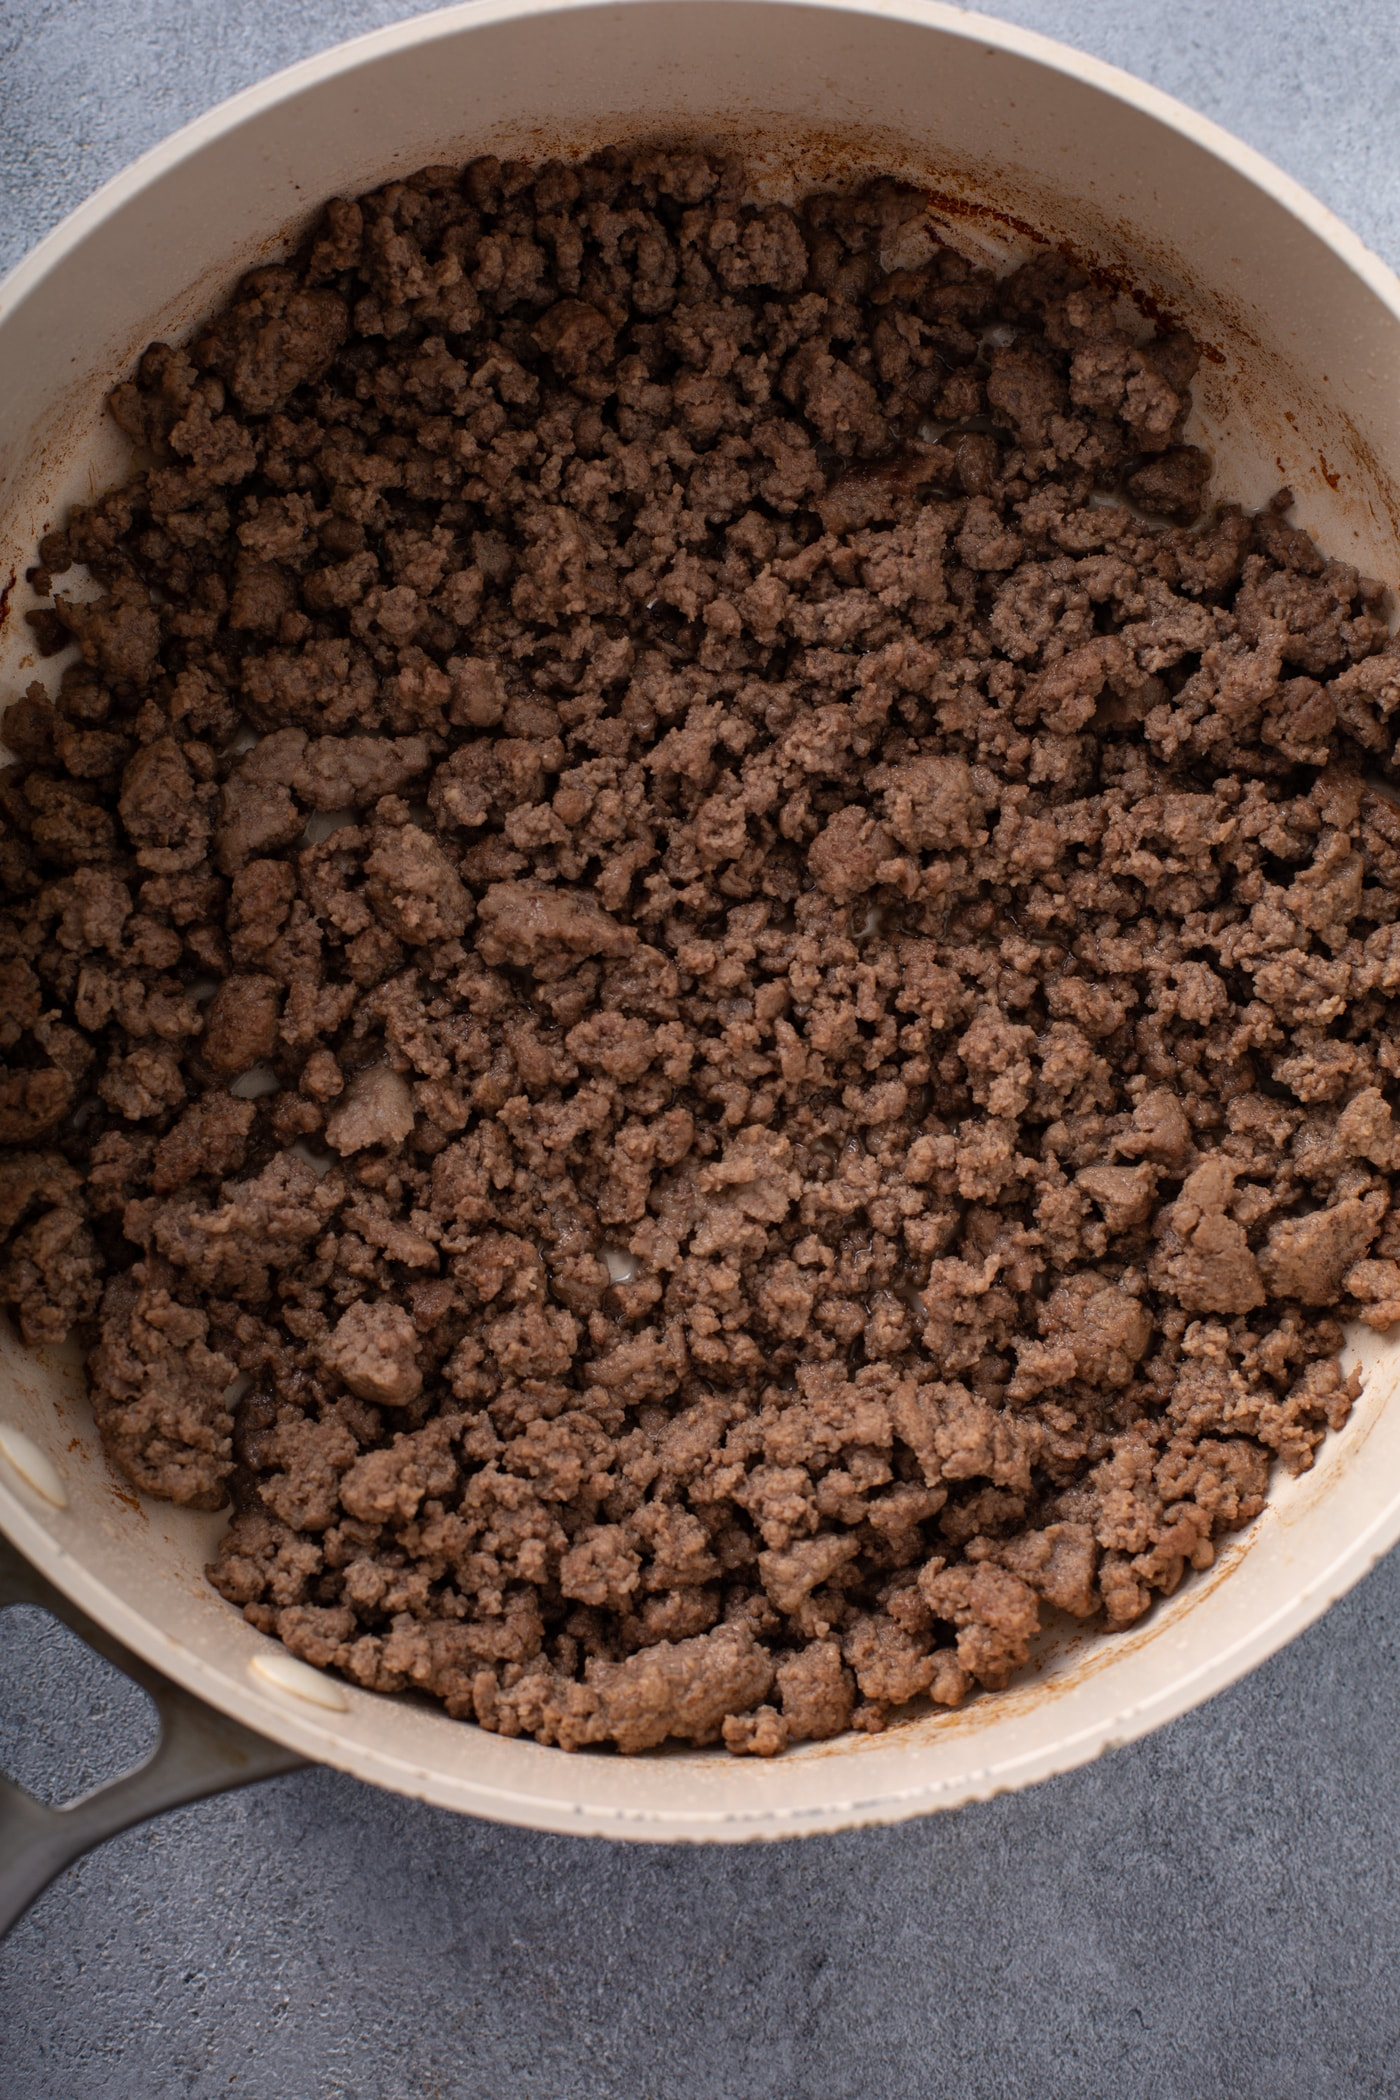 A casserole dish containing browned ground beef.